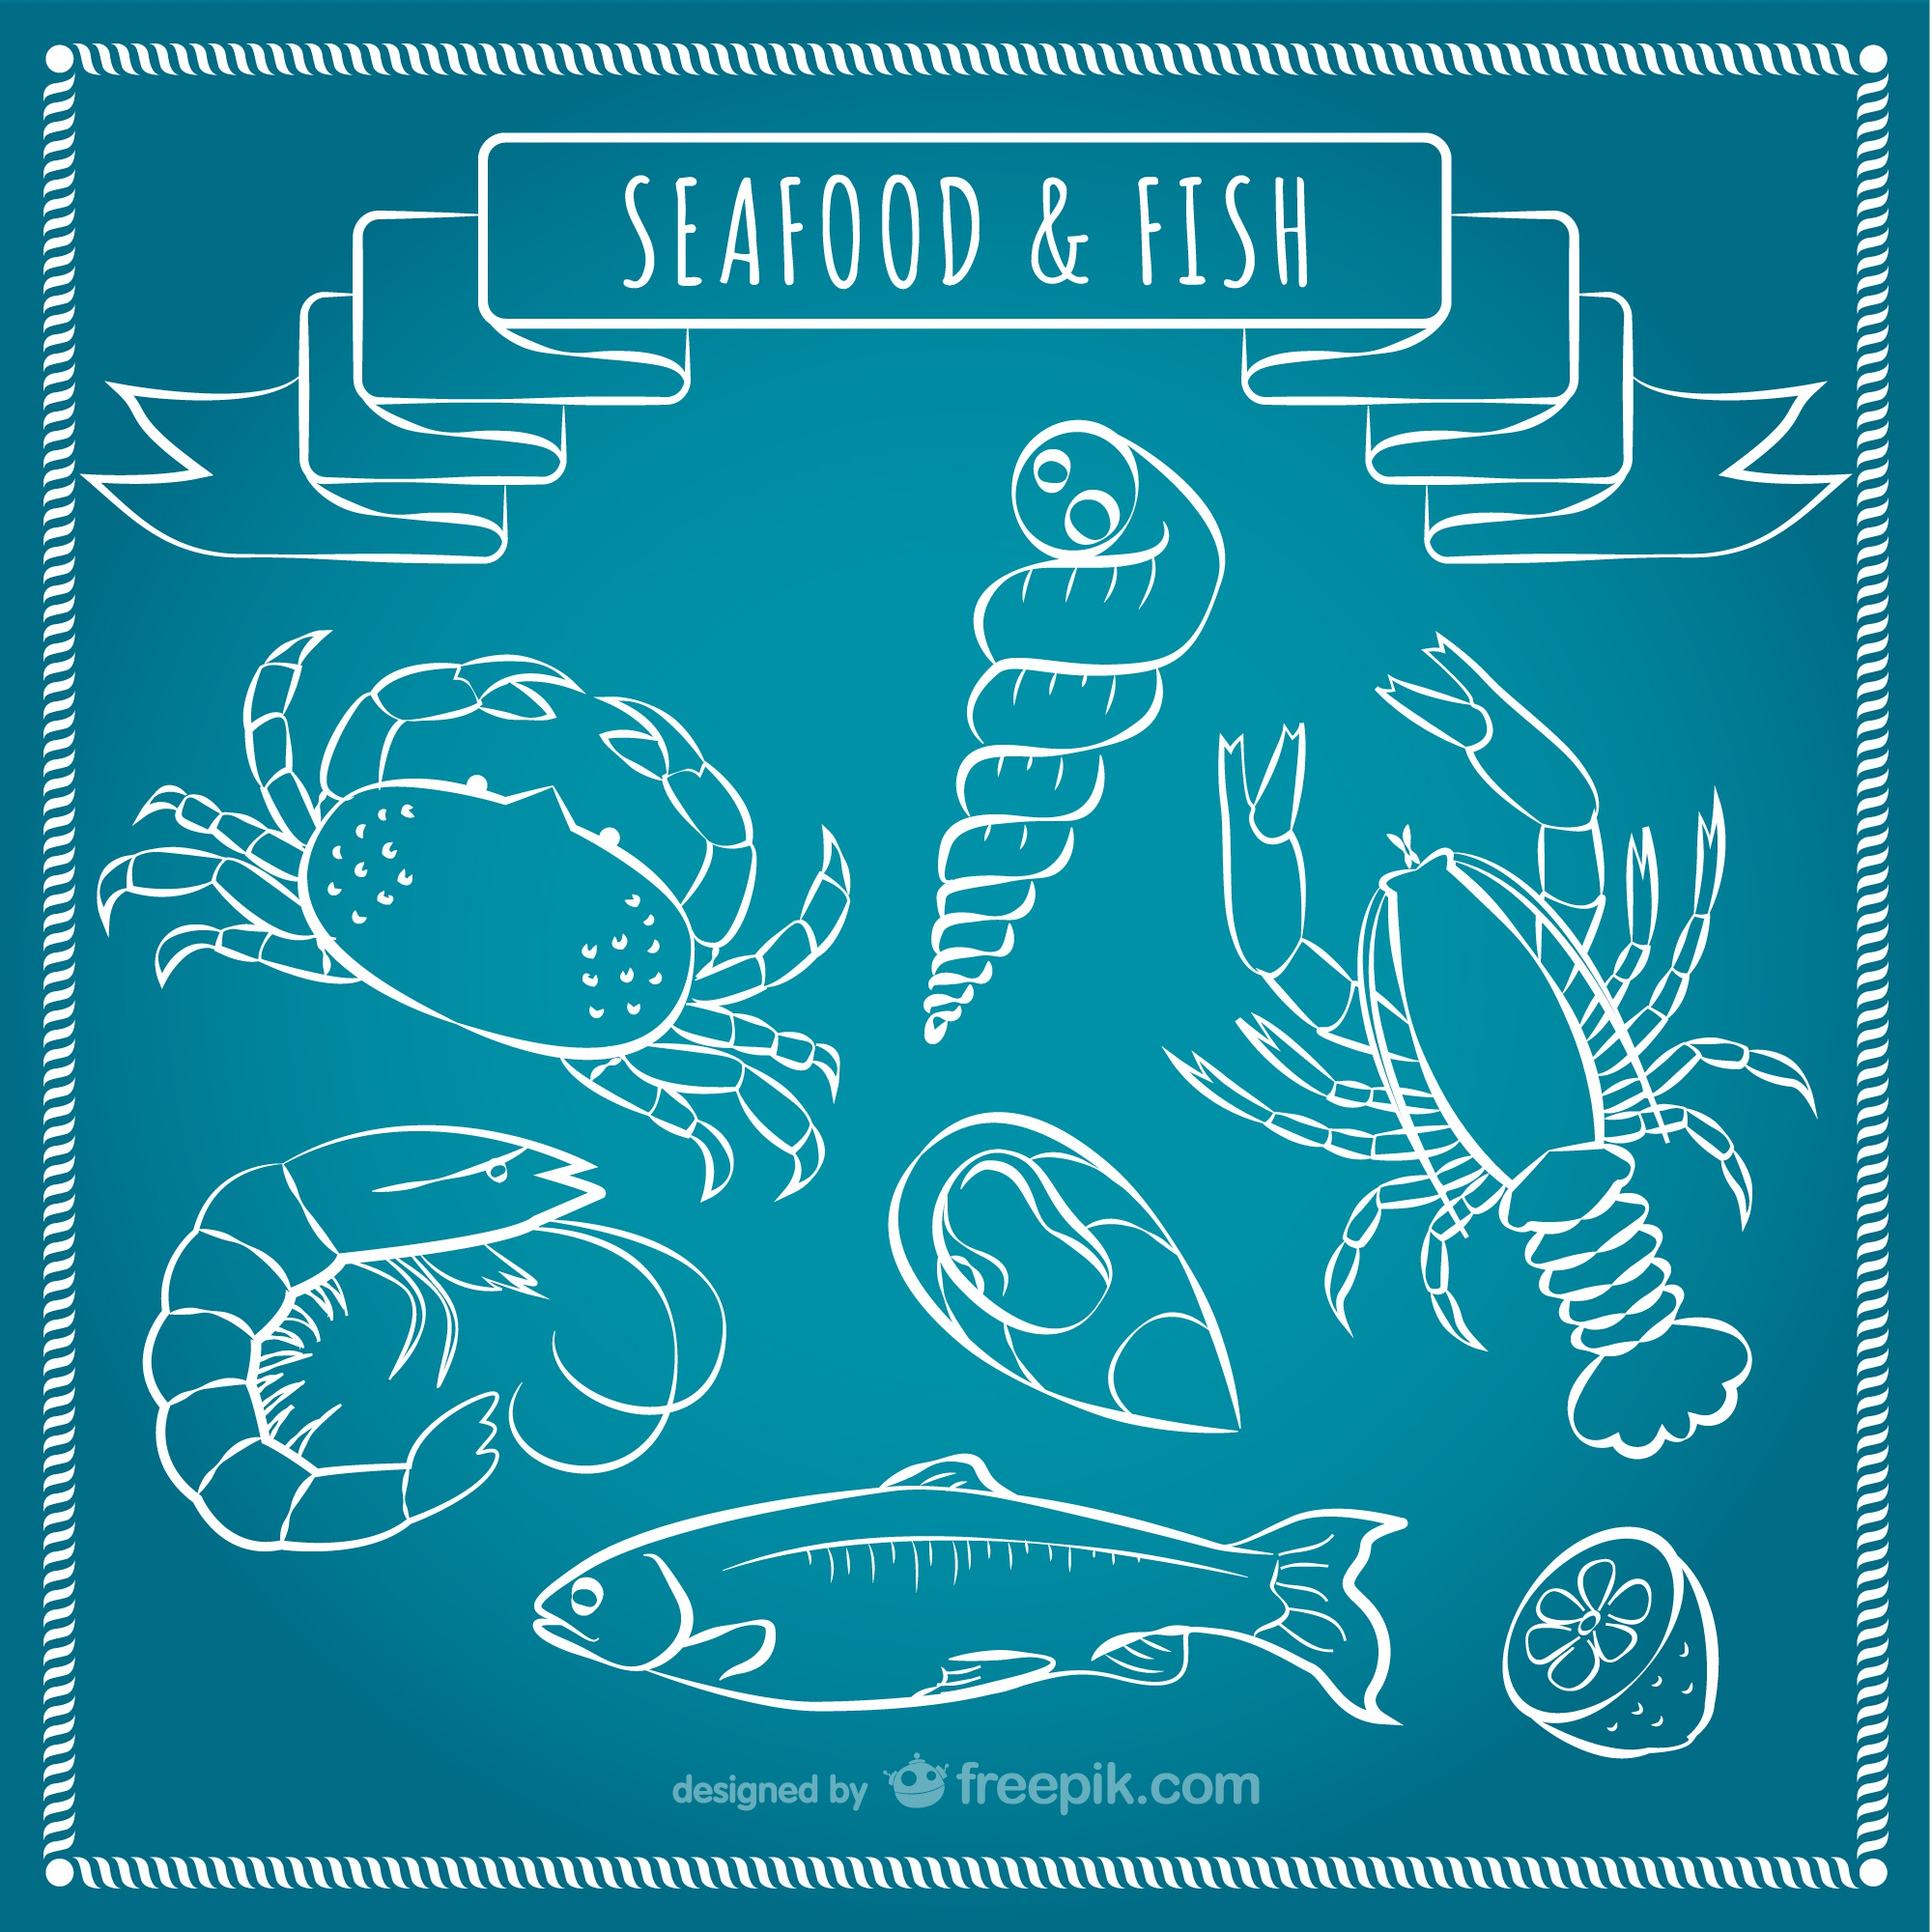 Seafood and fish vector